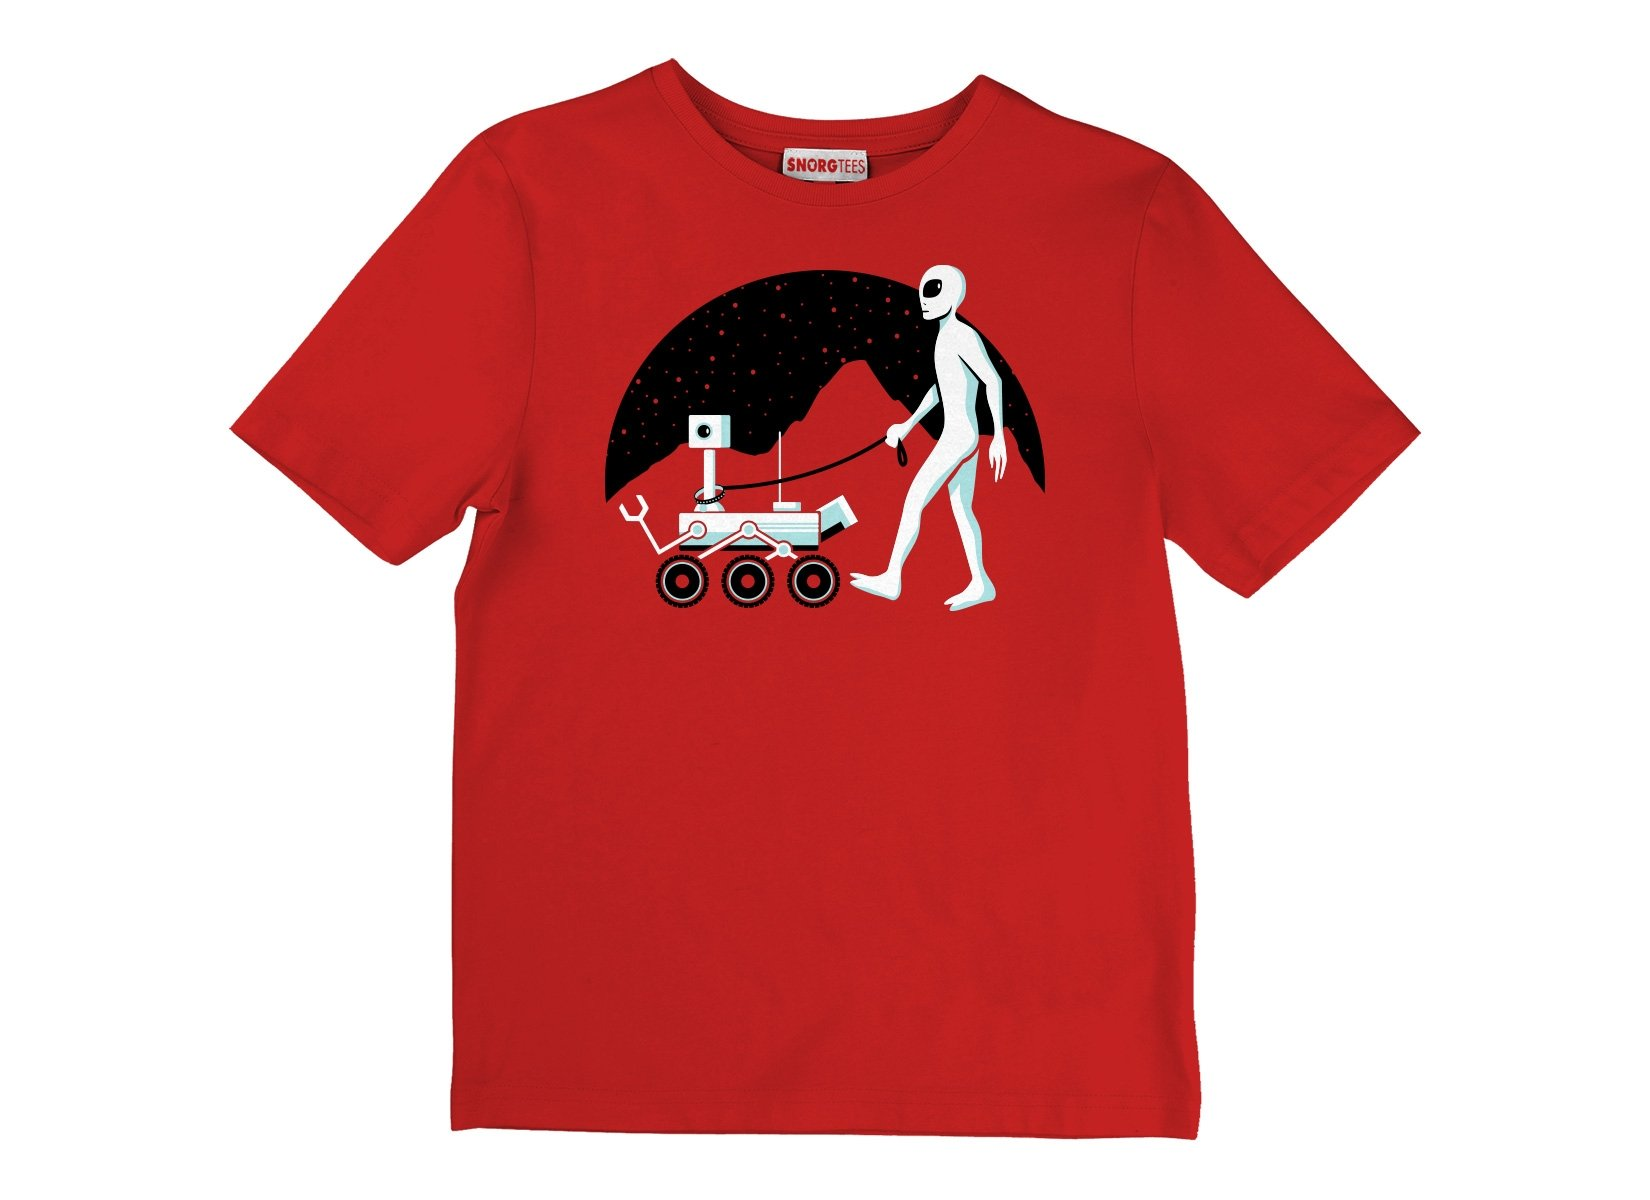 Mars Rover on Kids T-Shirt